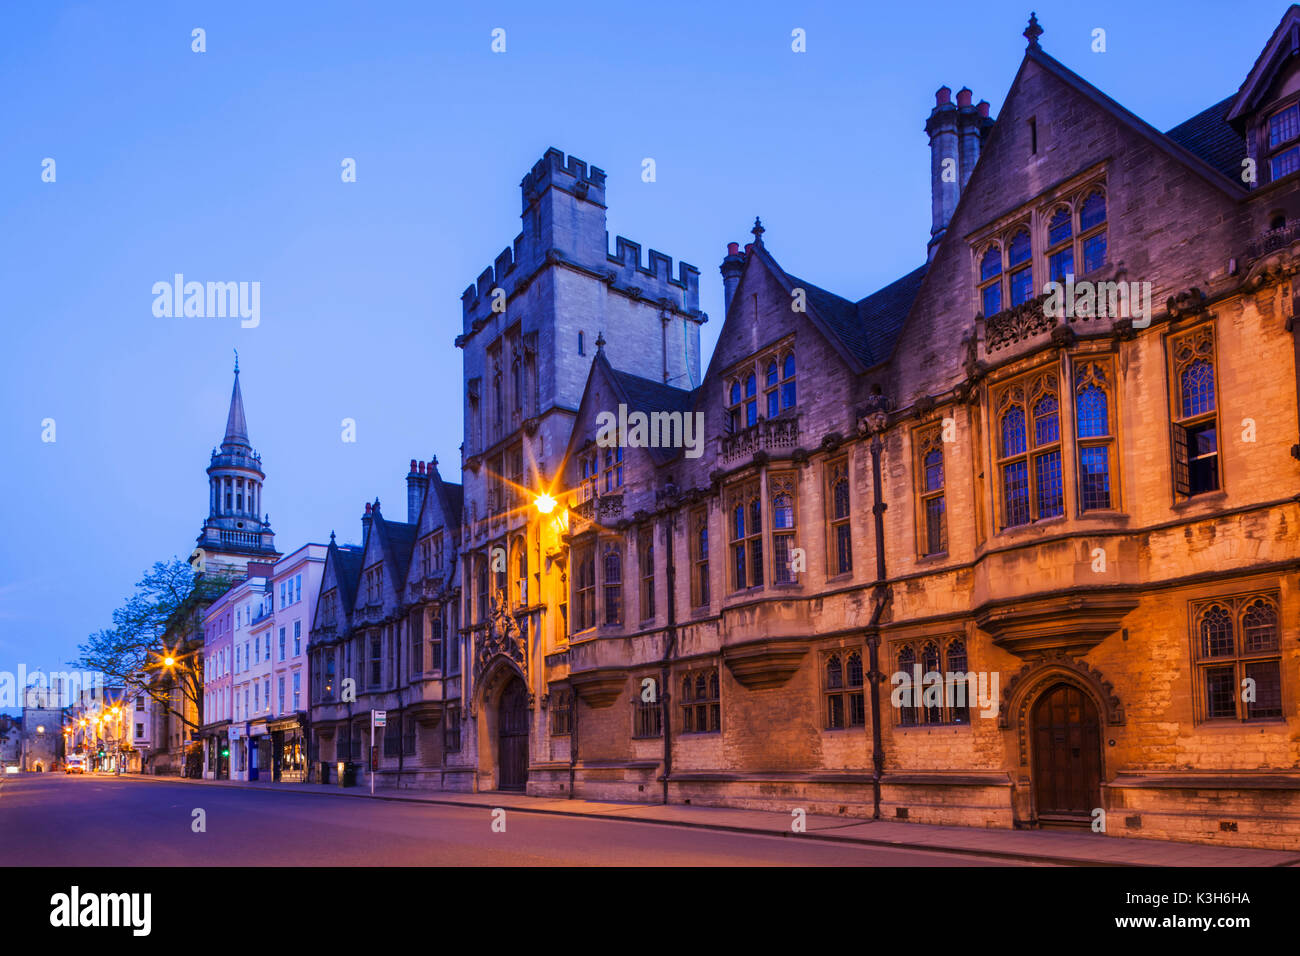 England, Oxfordshire, Oxford, Brasenose College and The High Street - Stock Image